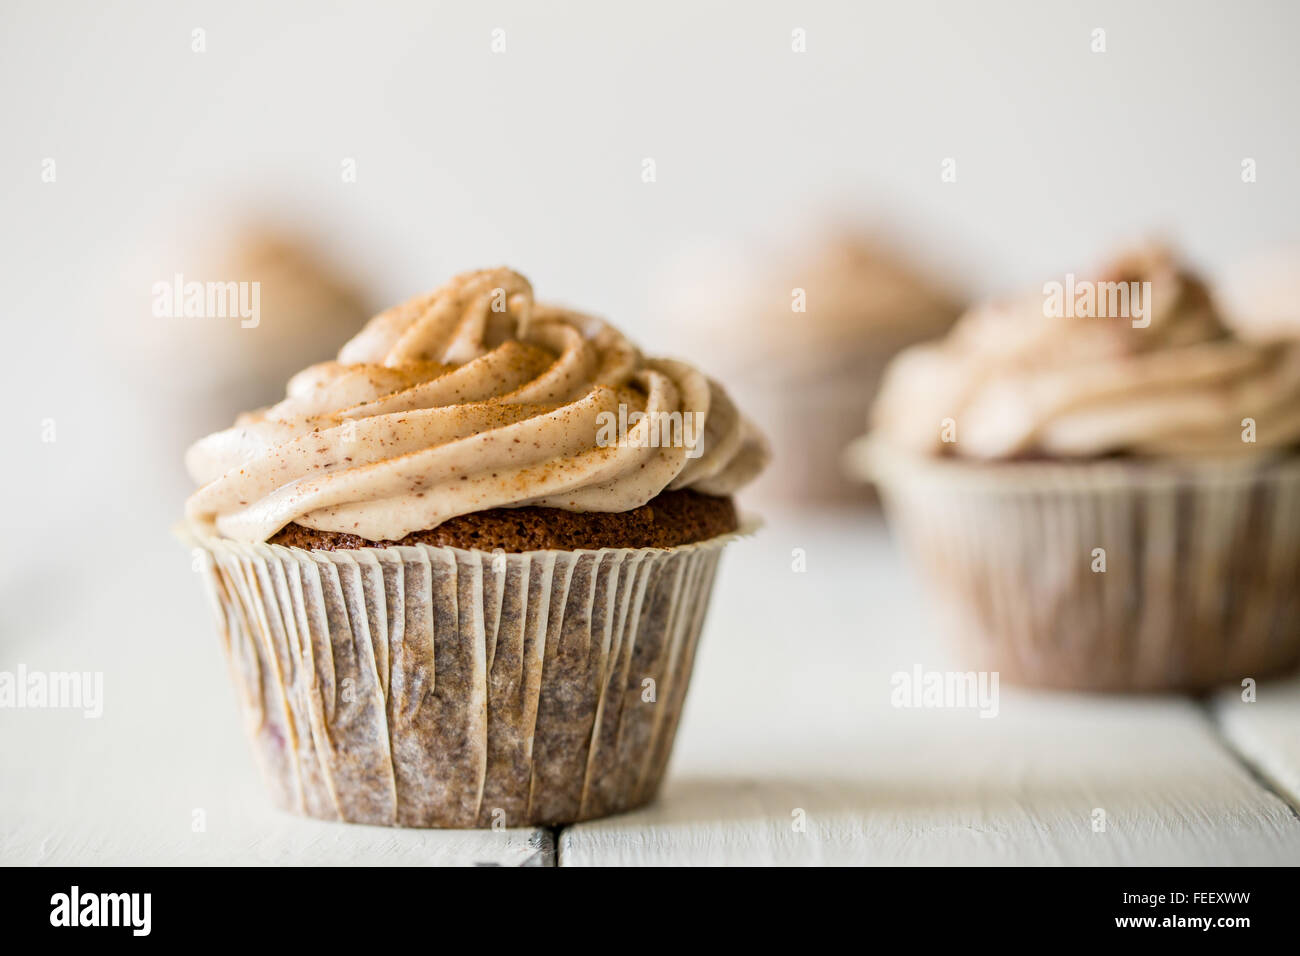 close up of a delicious cupcakes with mocca frosting - Stock Image